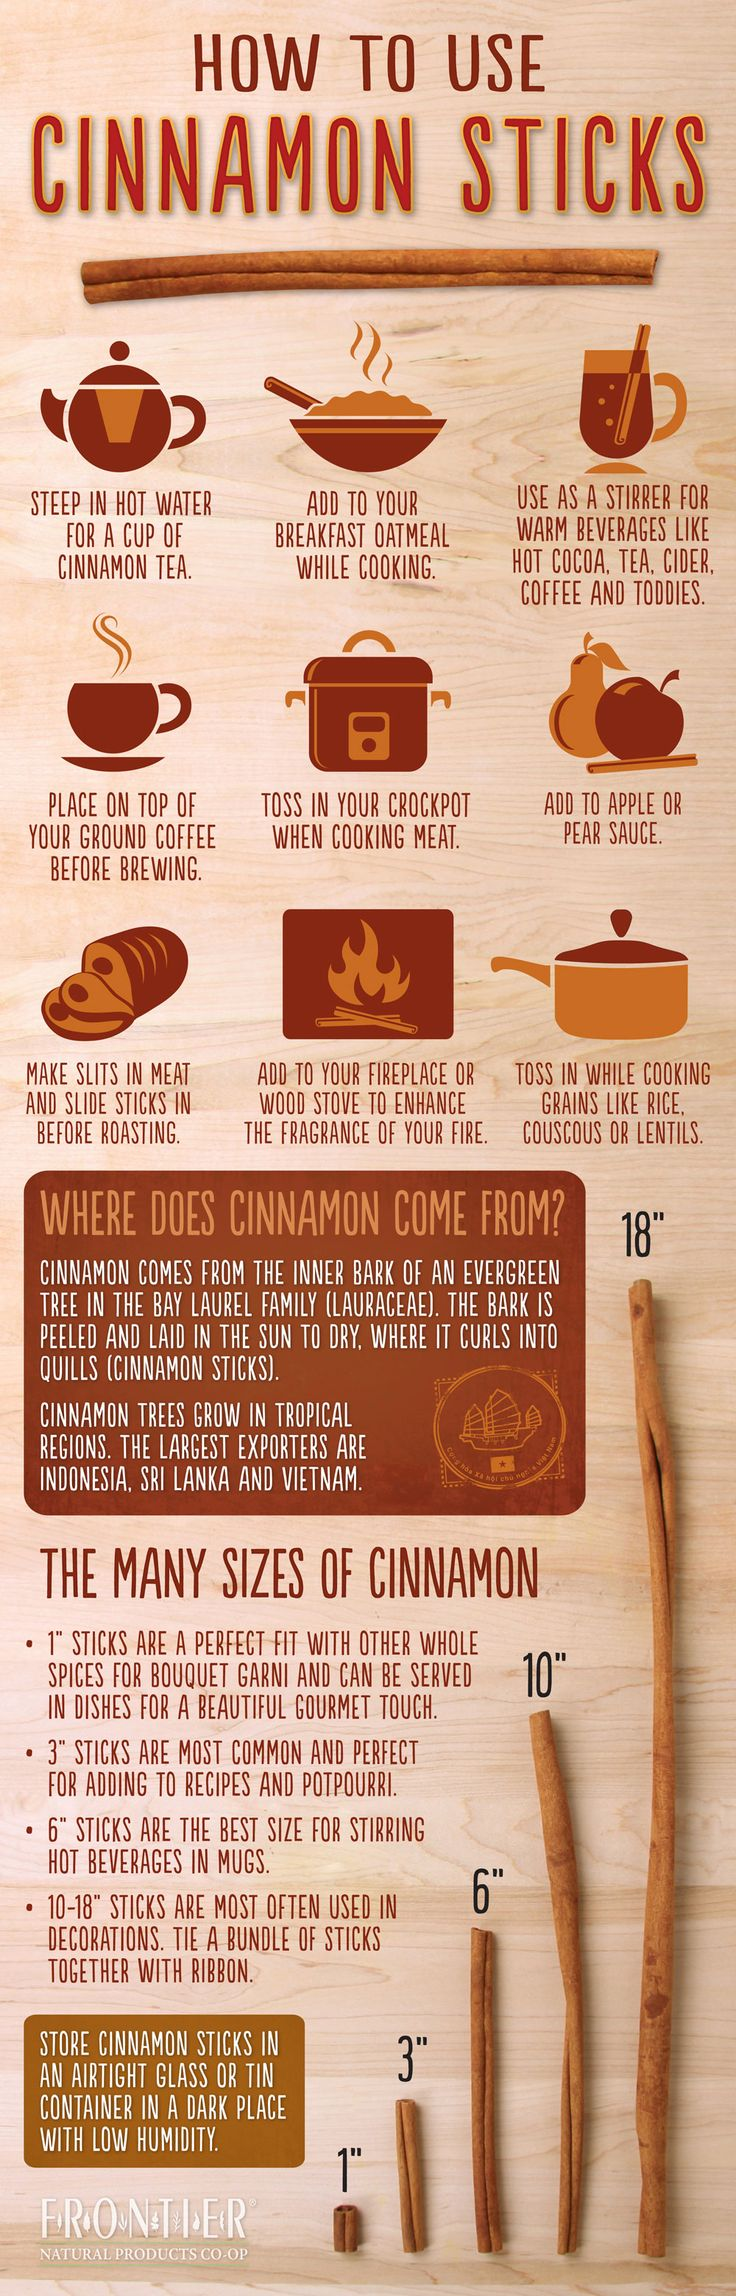 HOW TO USE CINNAMON STICKS ~ Enjoy this cool infographic detailing uses of this wonderfully healthy spice.